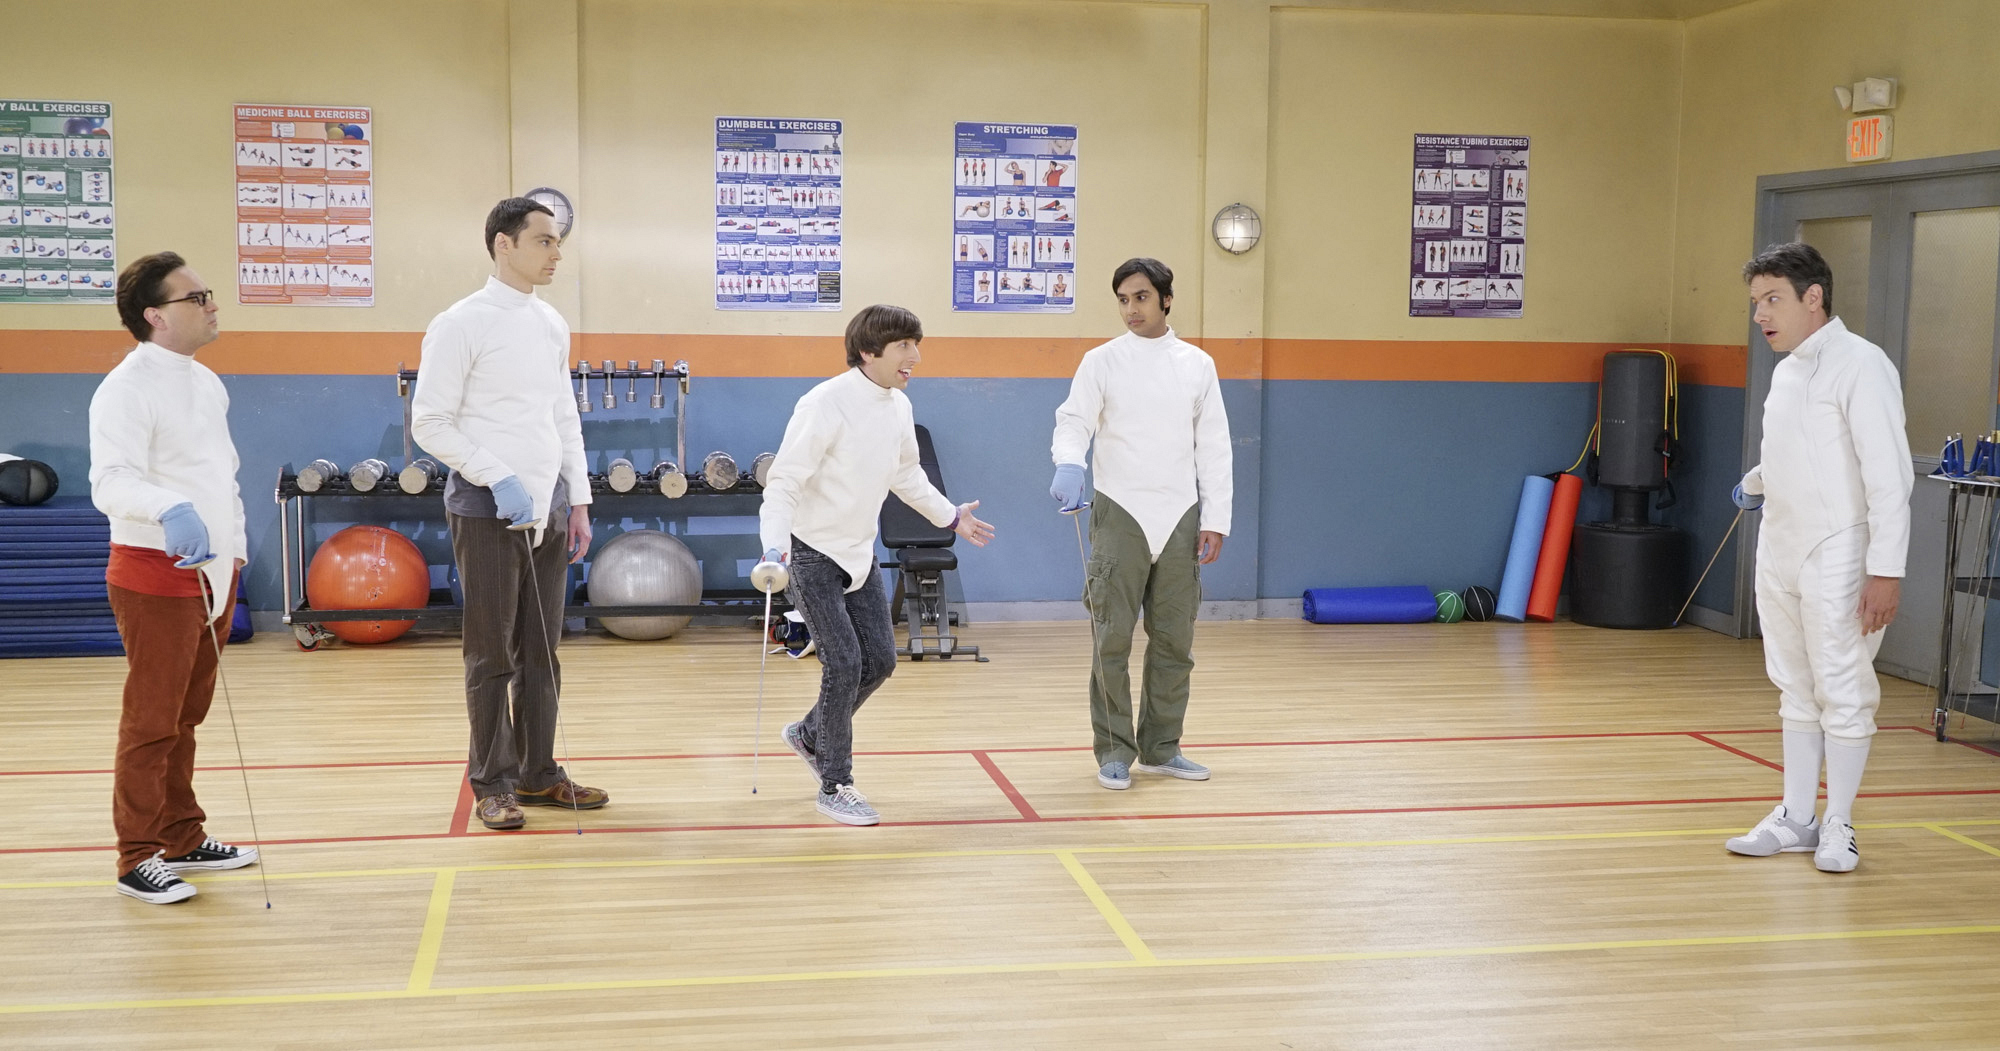 Kripke shows the guys a few introductory fencing moves